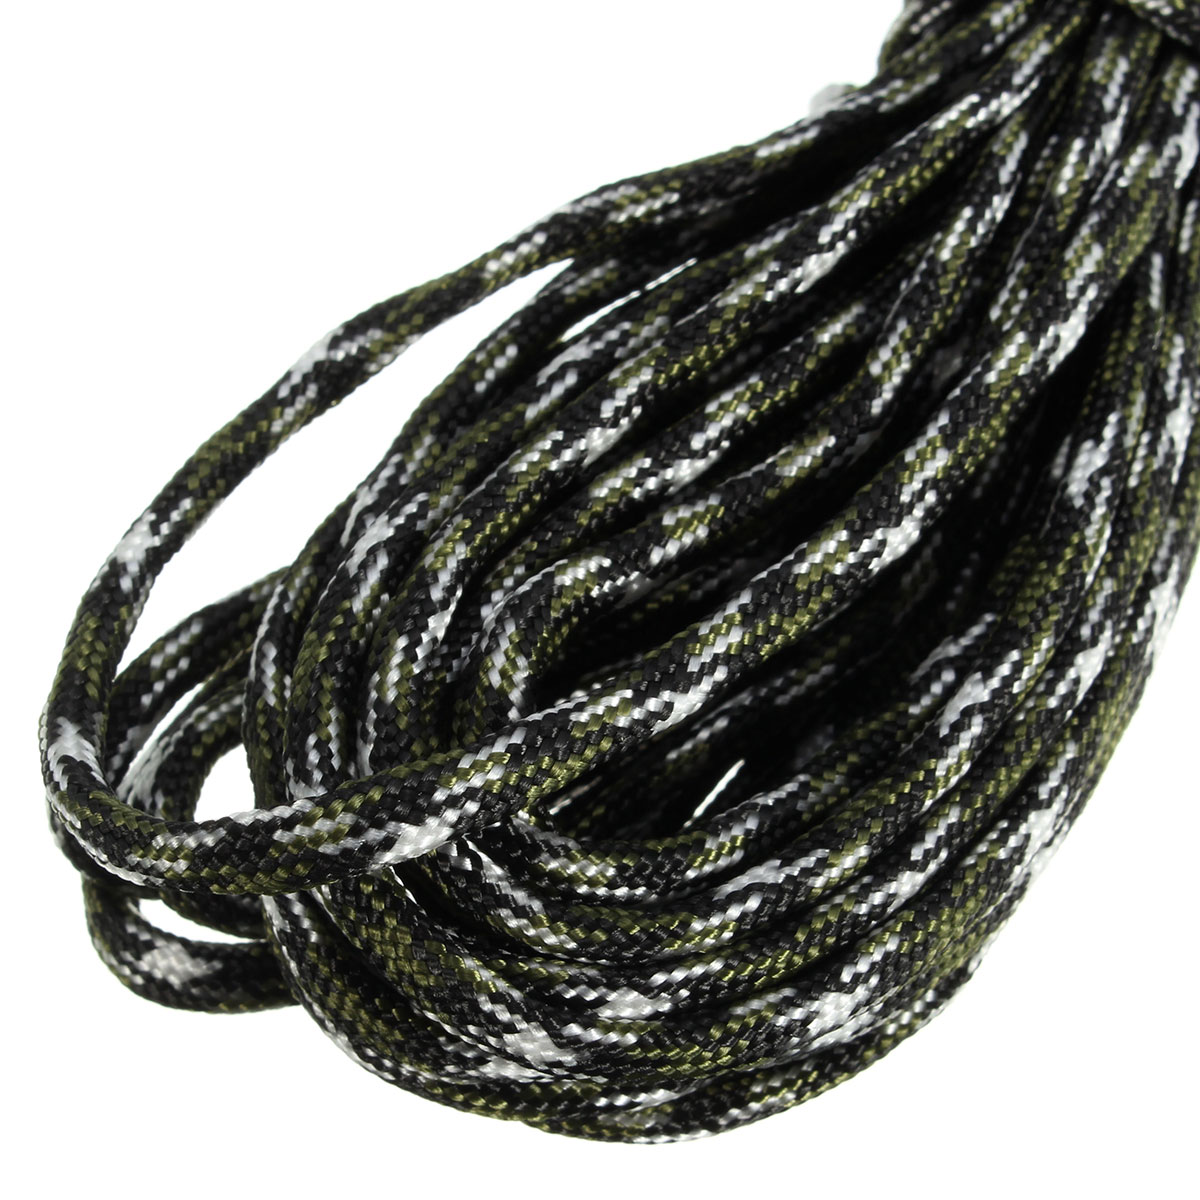 IPRee™ 26FT 8M 550lb Paracord Parachute 7 Inner Strand Survival Emergency Bushcraft